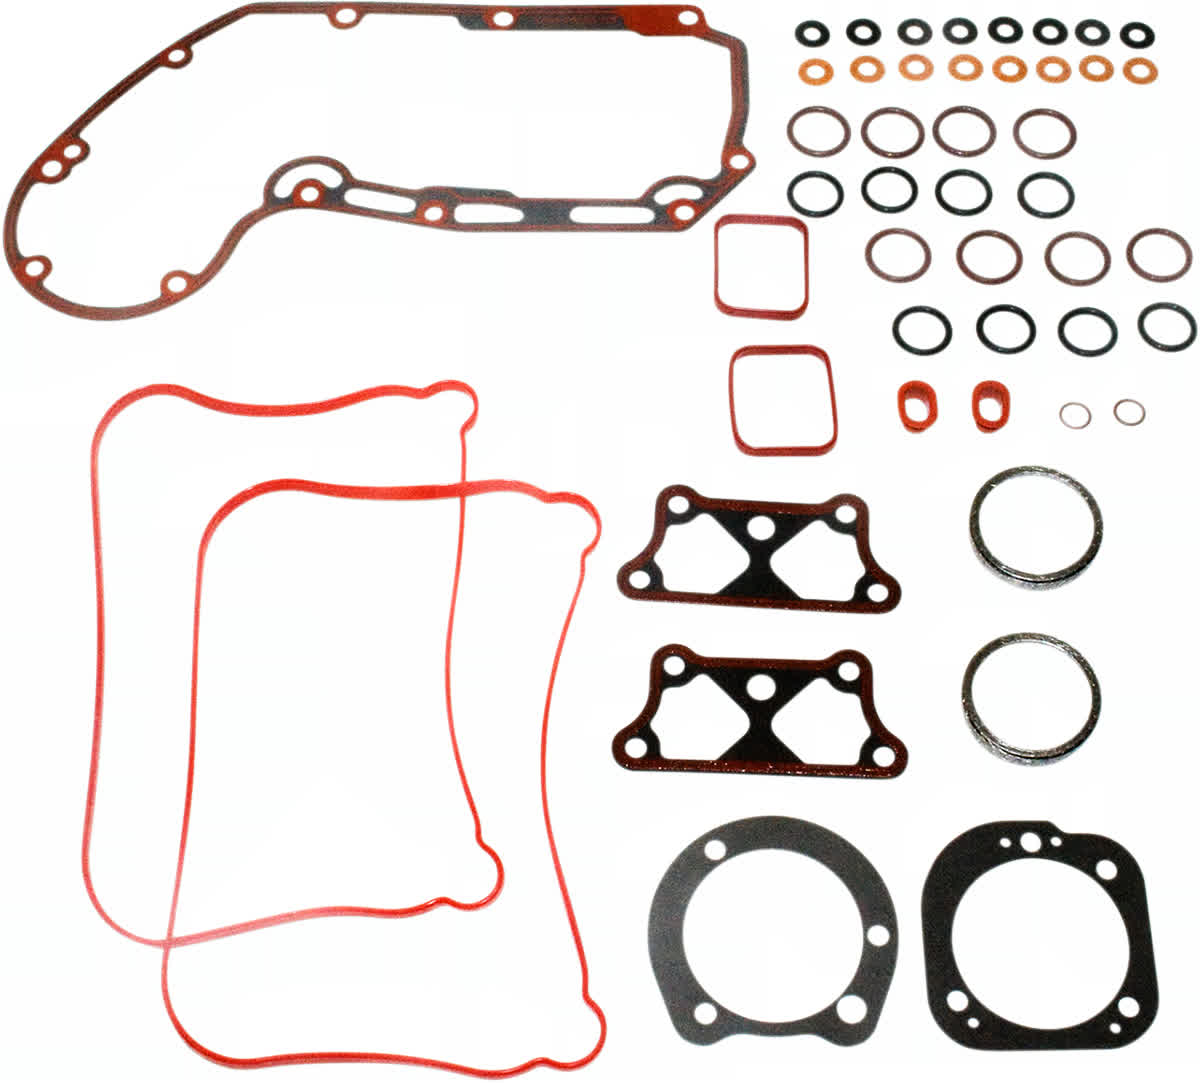 Feuling 2042 Camshaft Installation Kit 04-06 XL